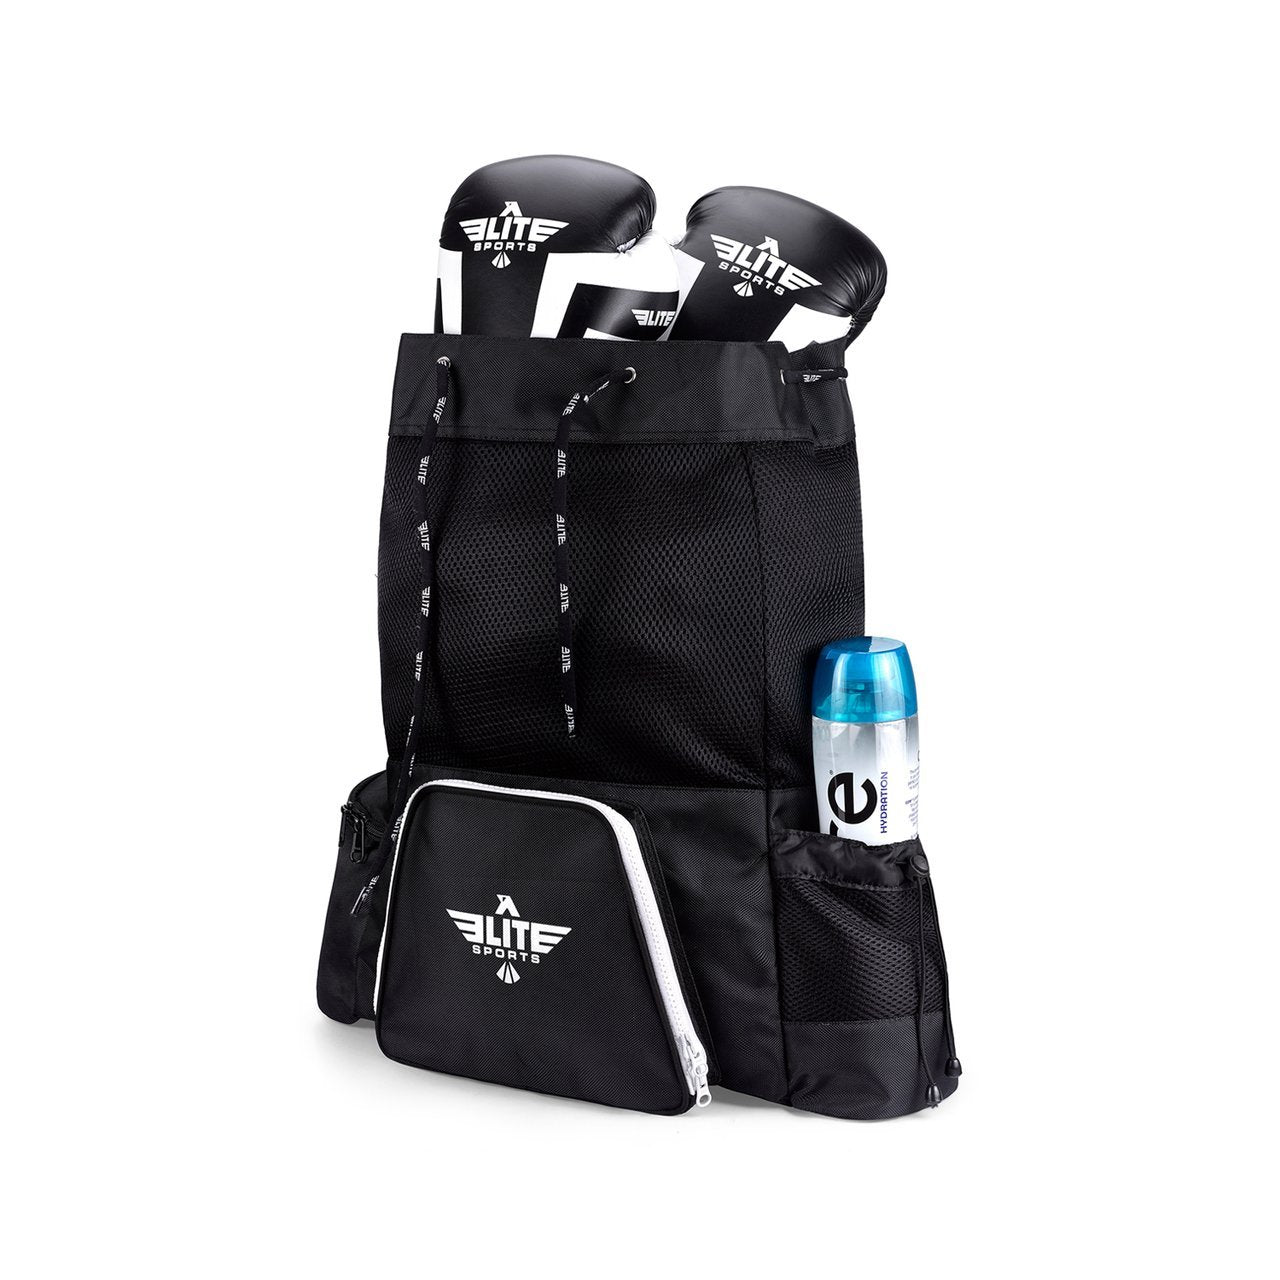 Load image into Gallery viewer, Elite Sports Mesh Black Medium Boxing Gear Gym Bag & Backpack